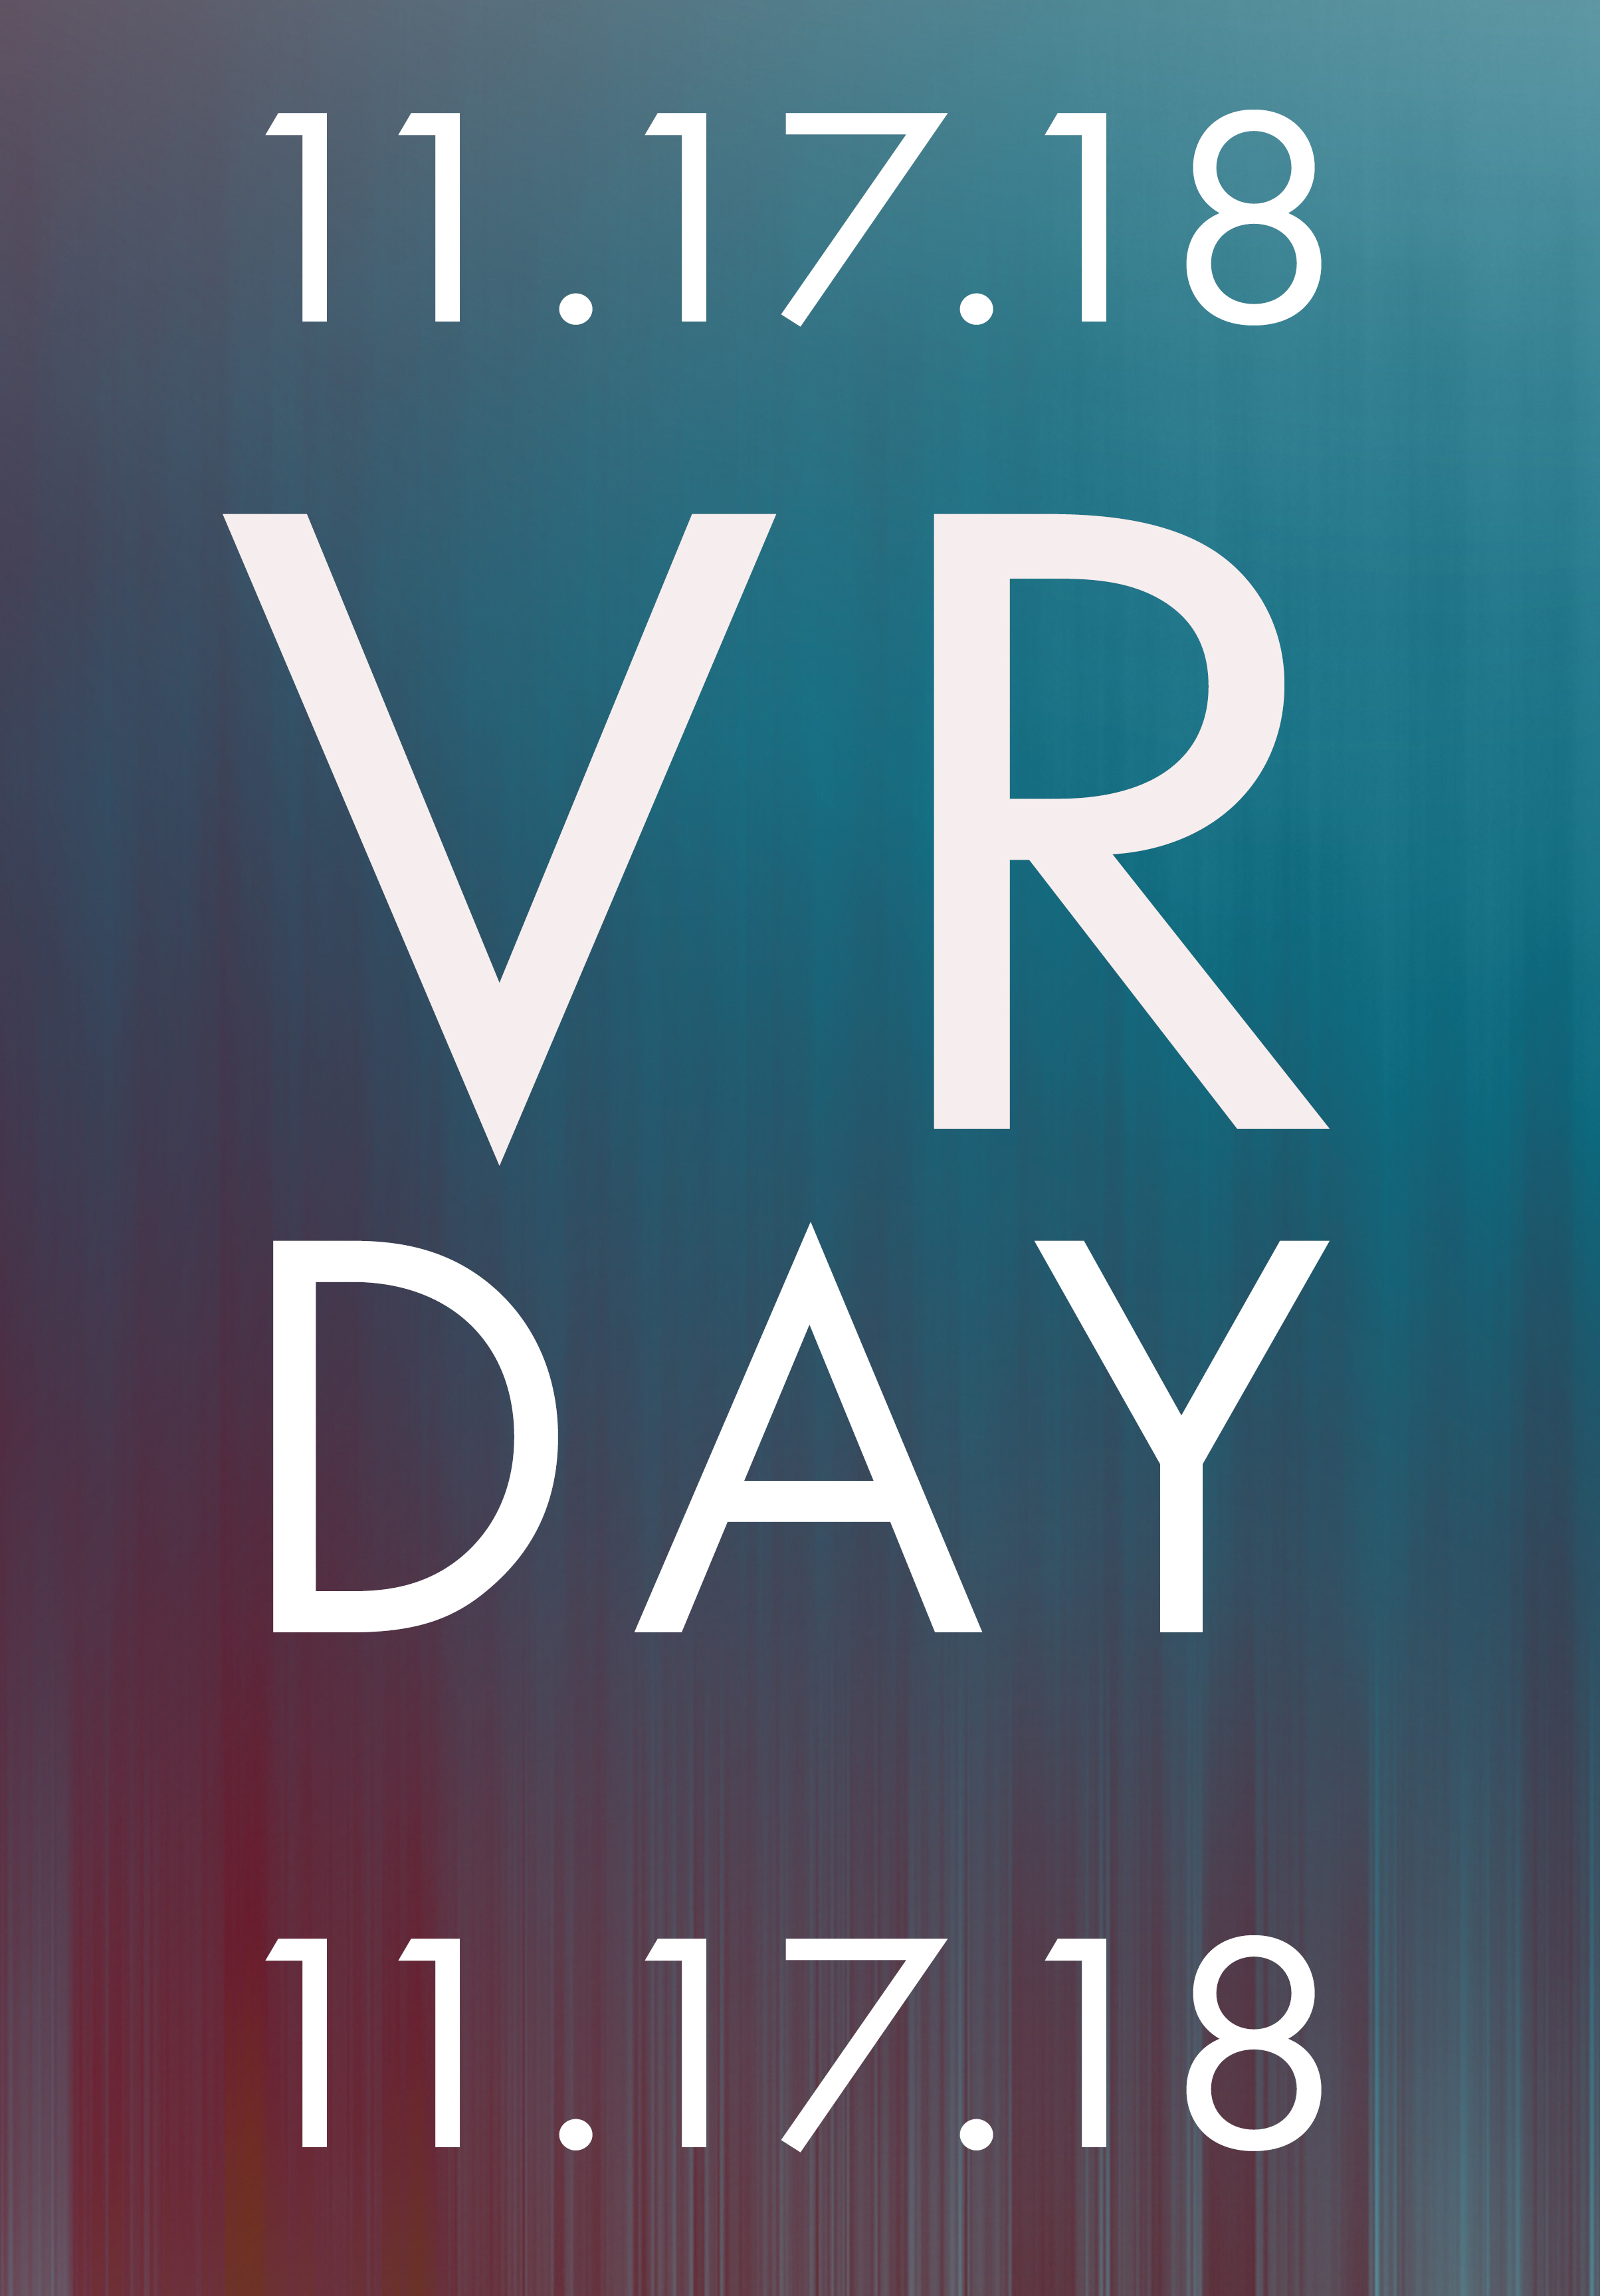 Berkeley-VR-day